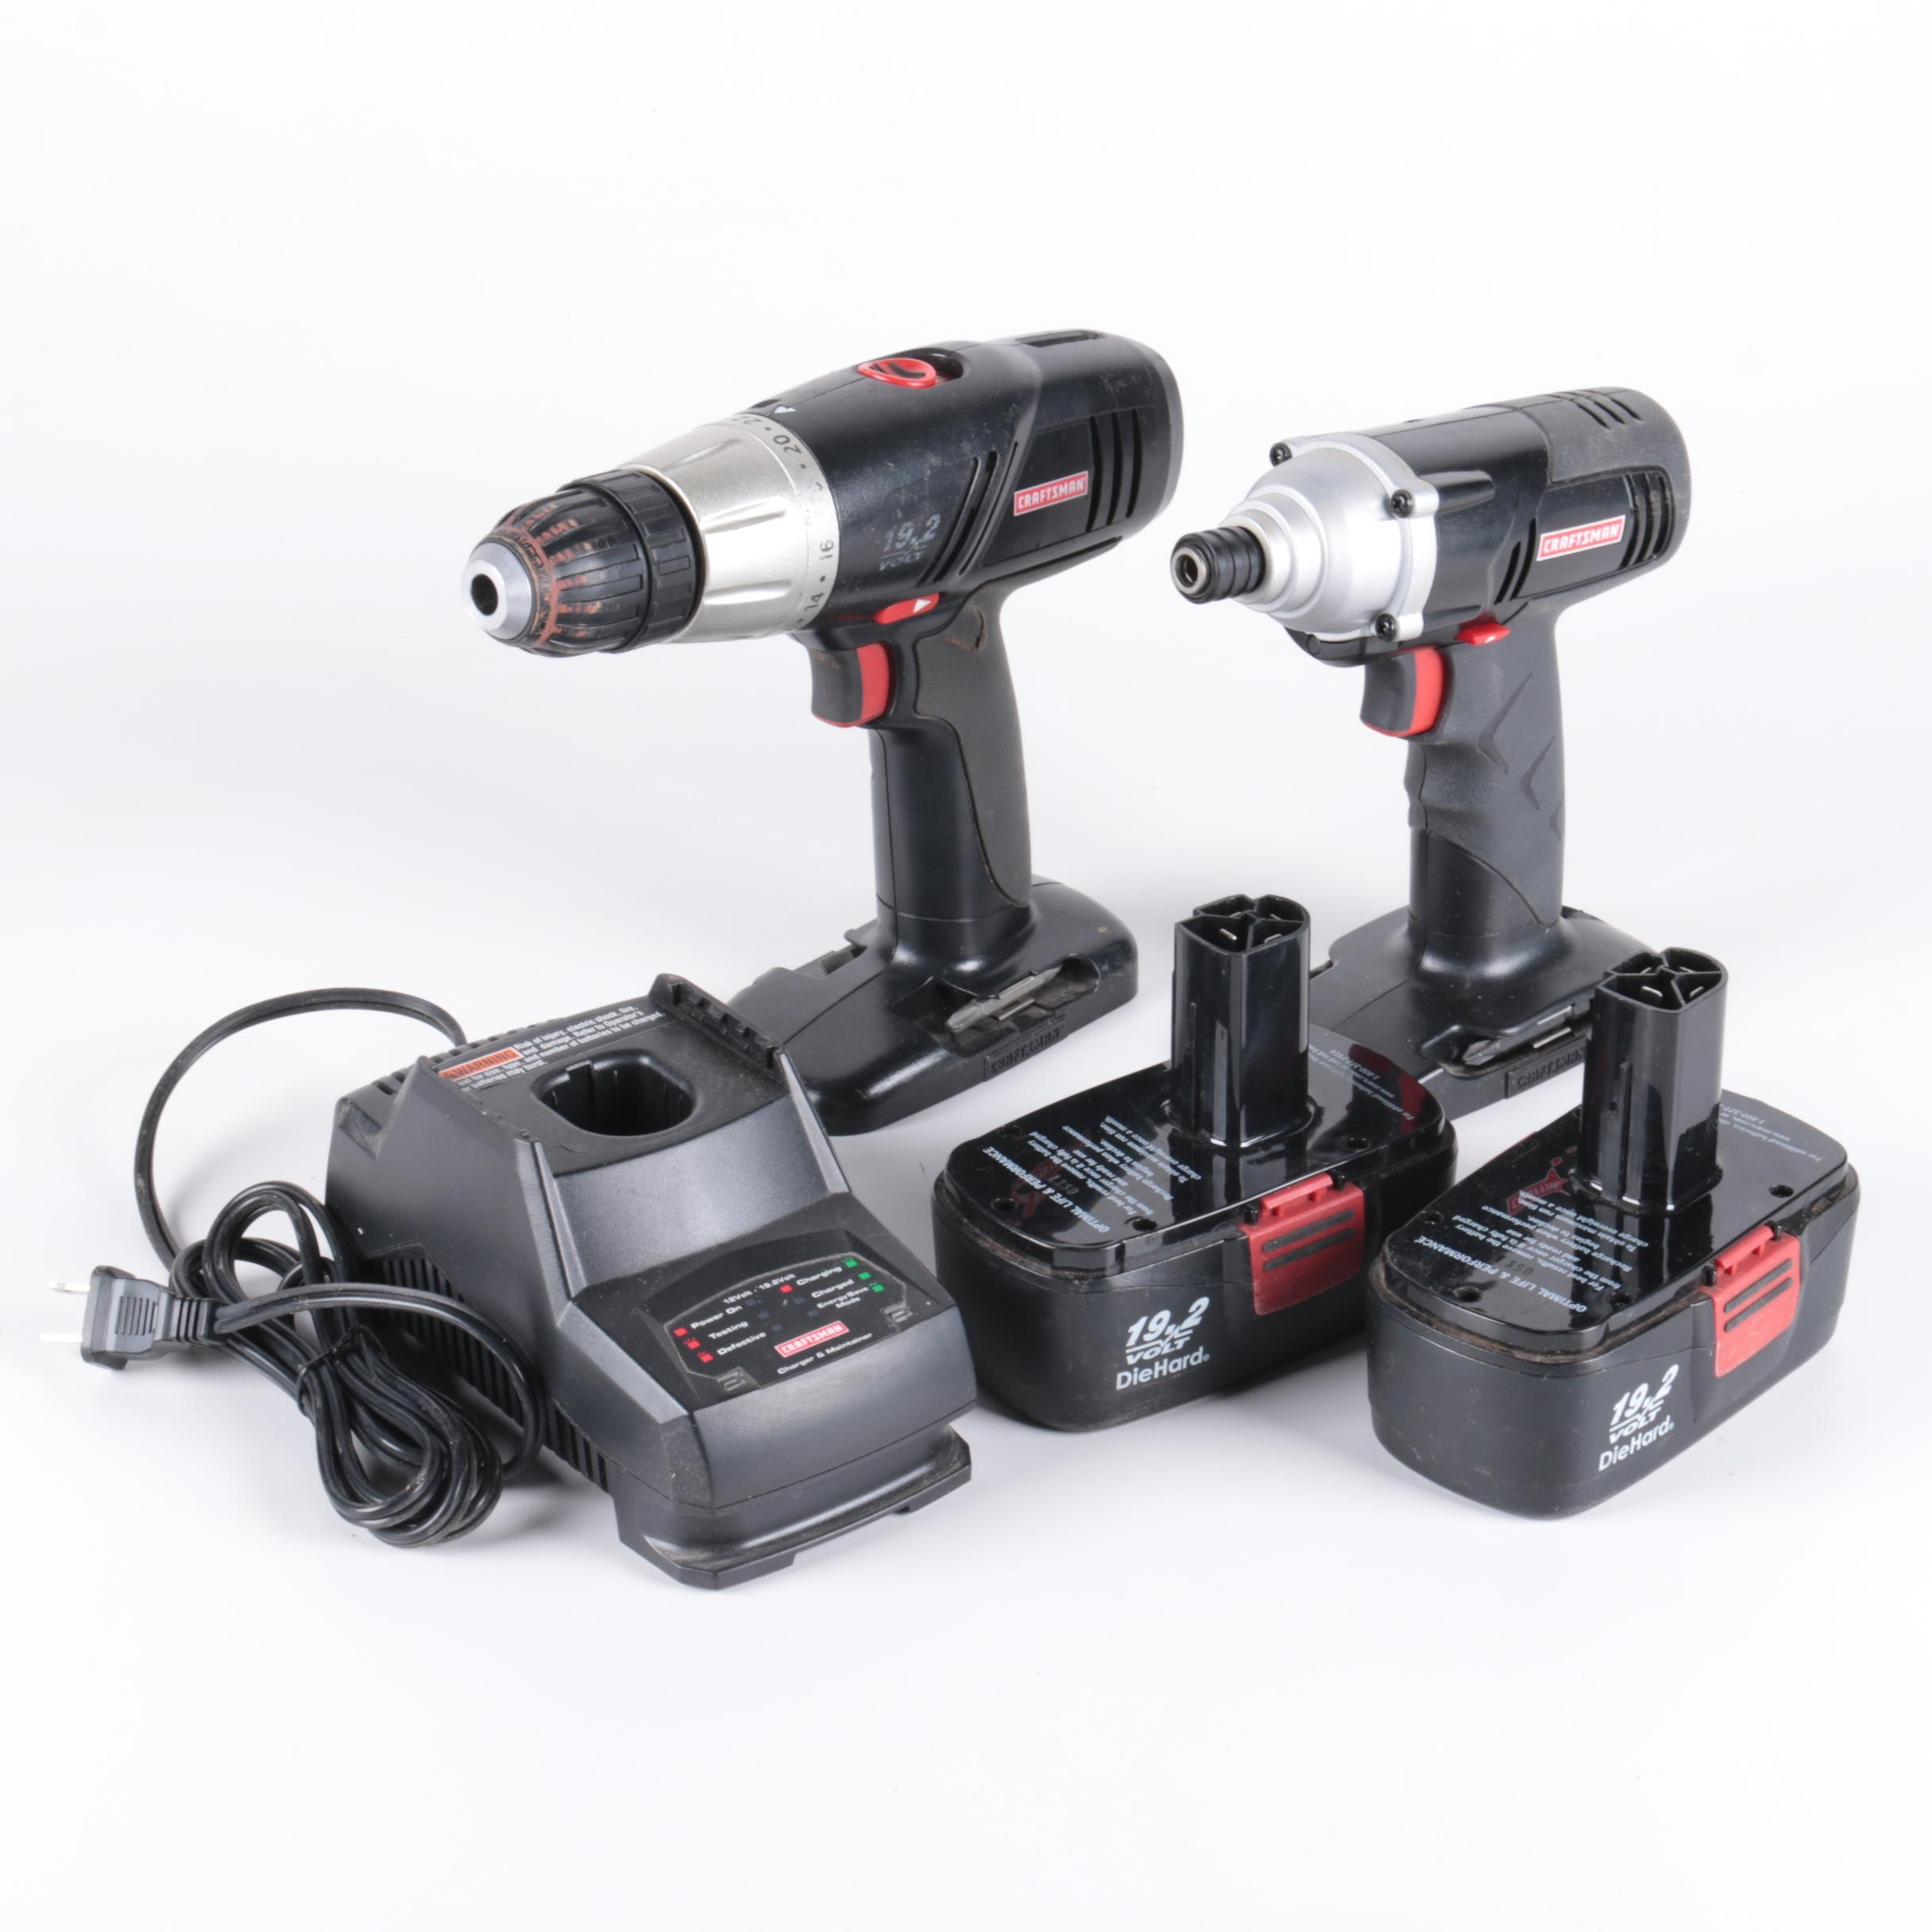 Pair of Craftsman Drills and Drill Chargers